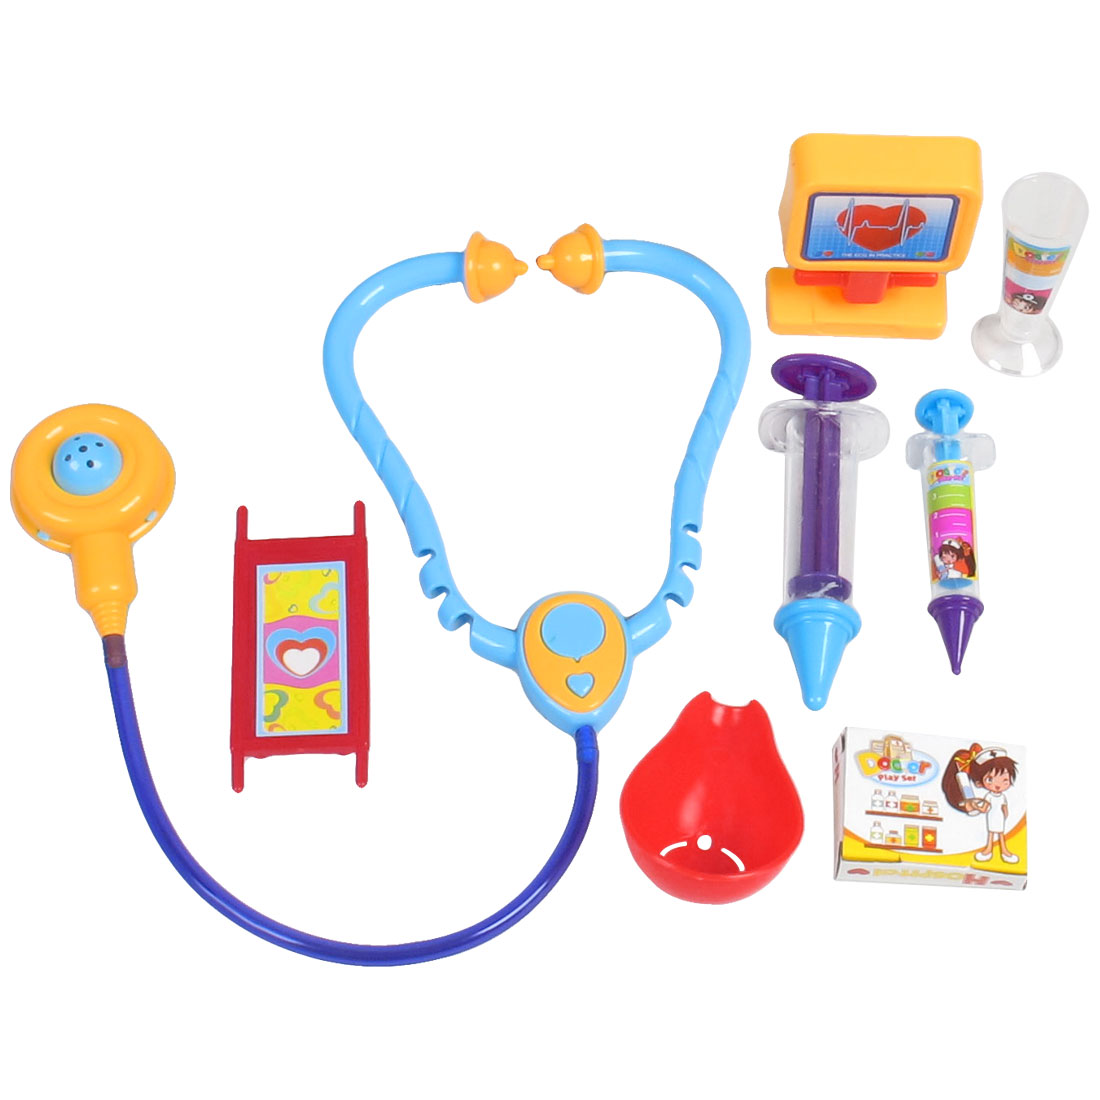 8 in 1 Plastic Stethoscope Stretcher Emulational Doctor Tools Toy for Children